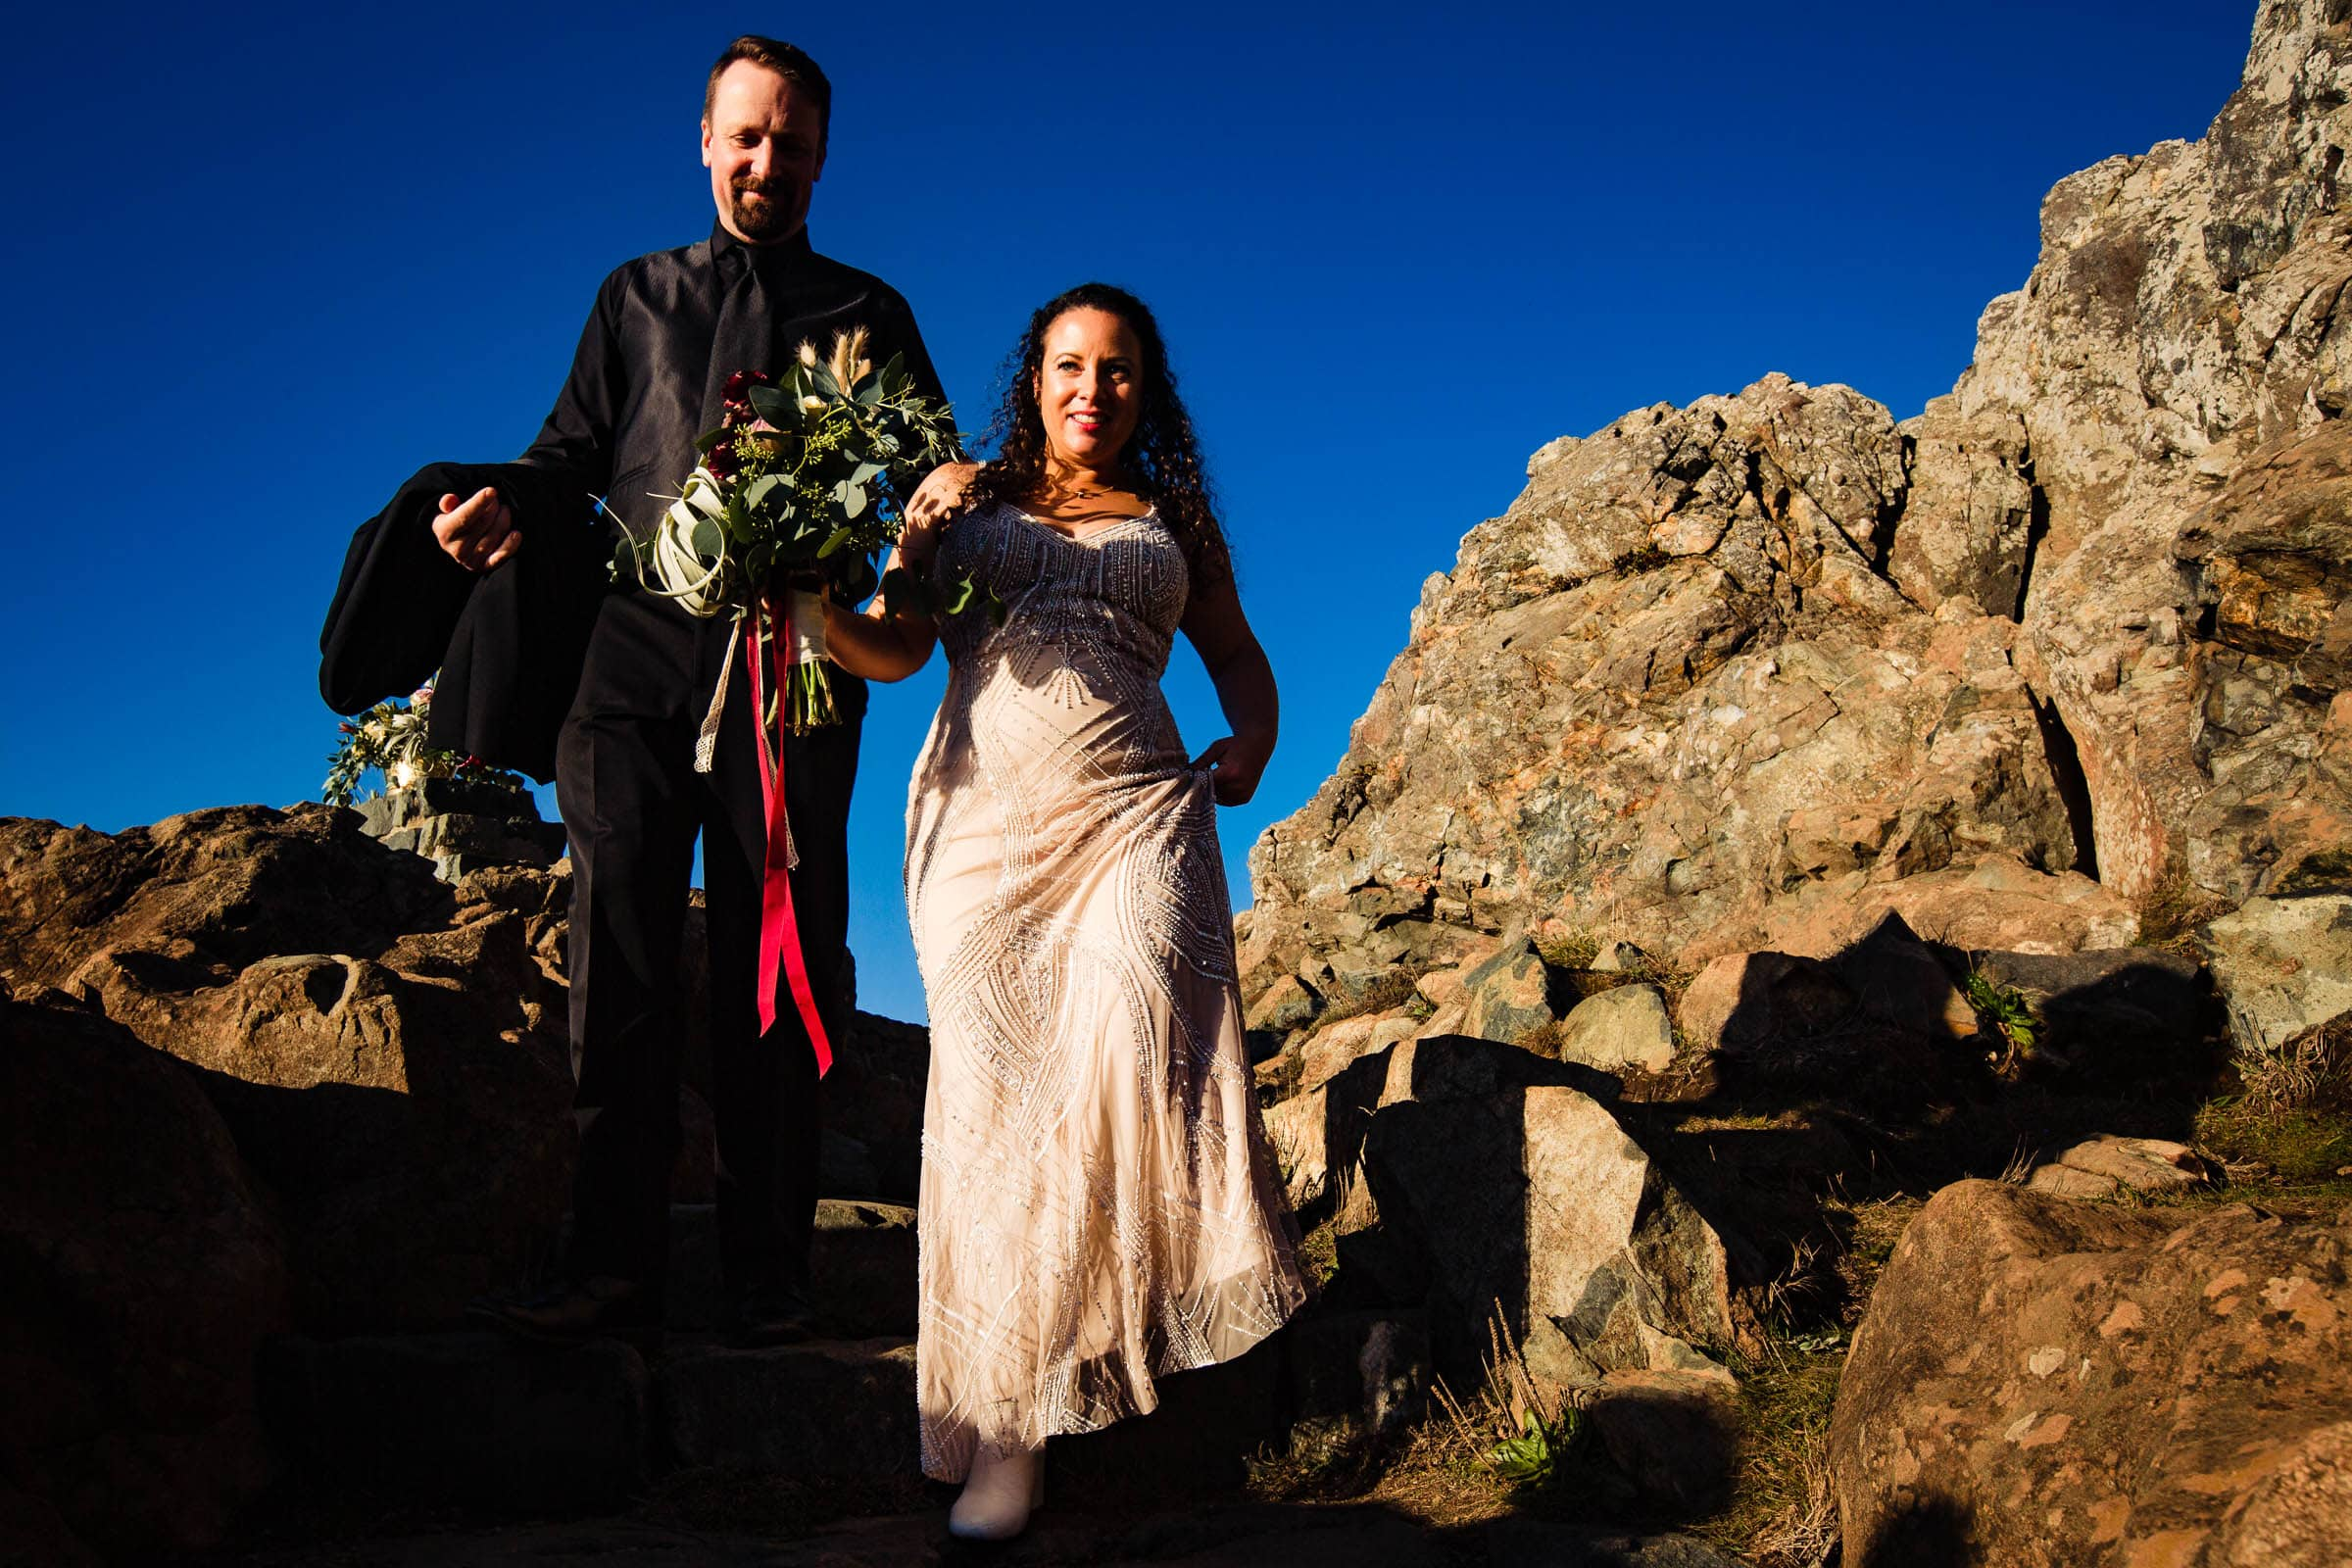 Bride and groom exiting their Patricks Point elopement ceremony on Wedding Rock near Trinidad California